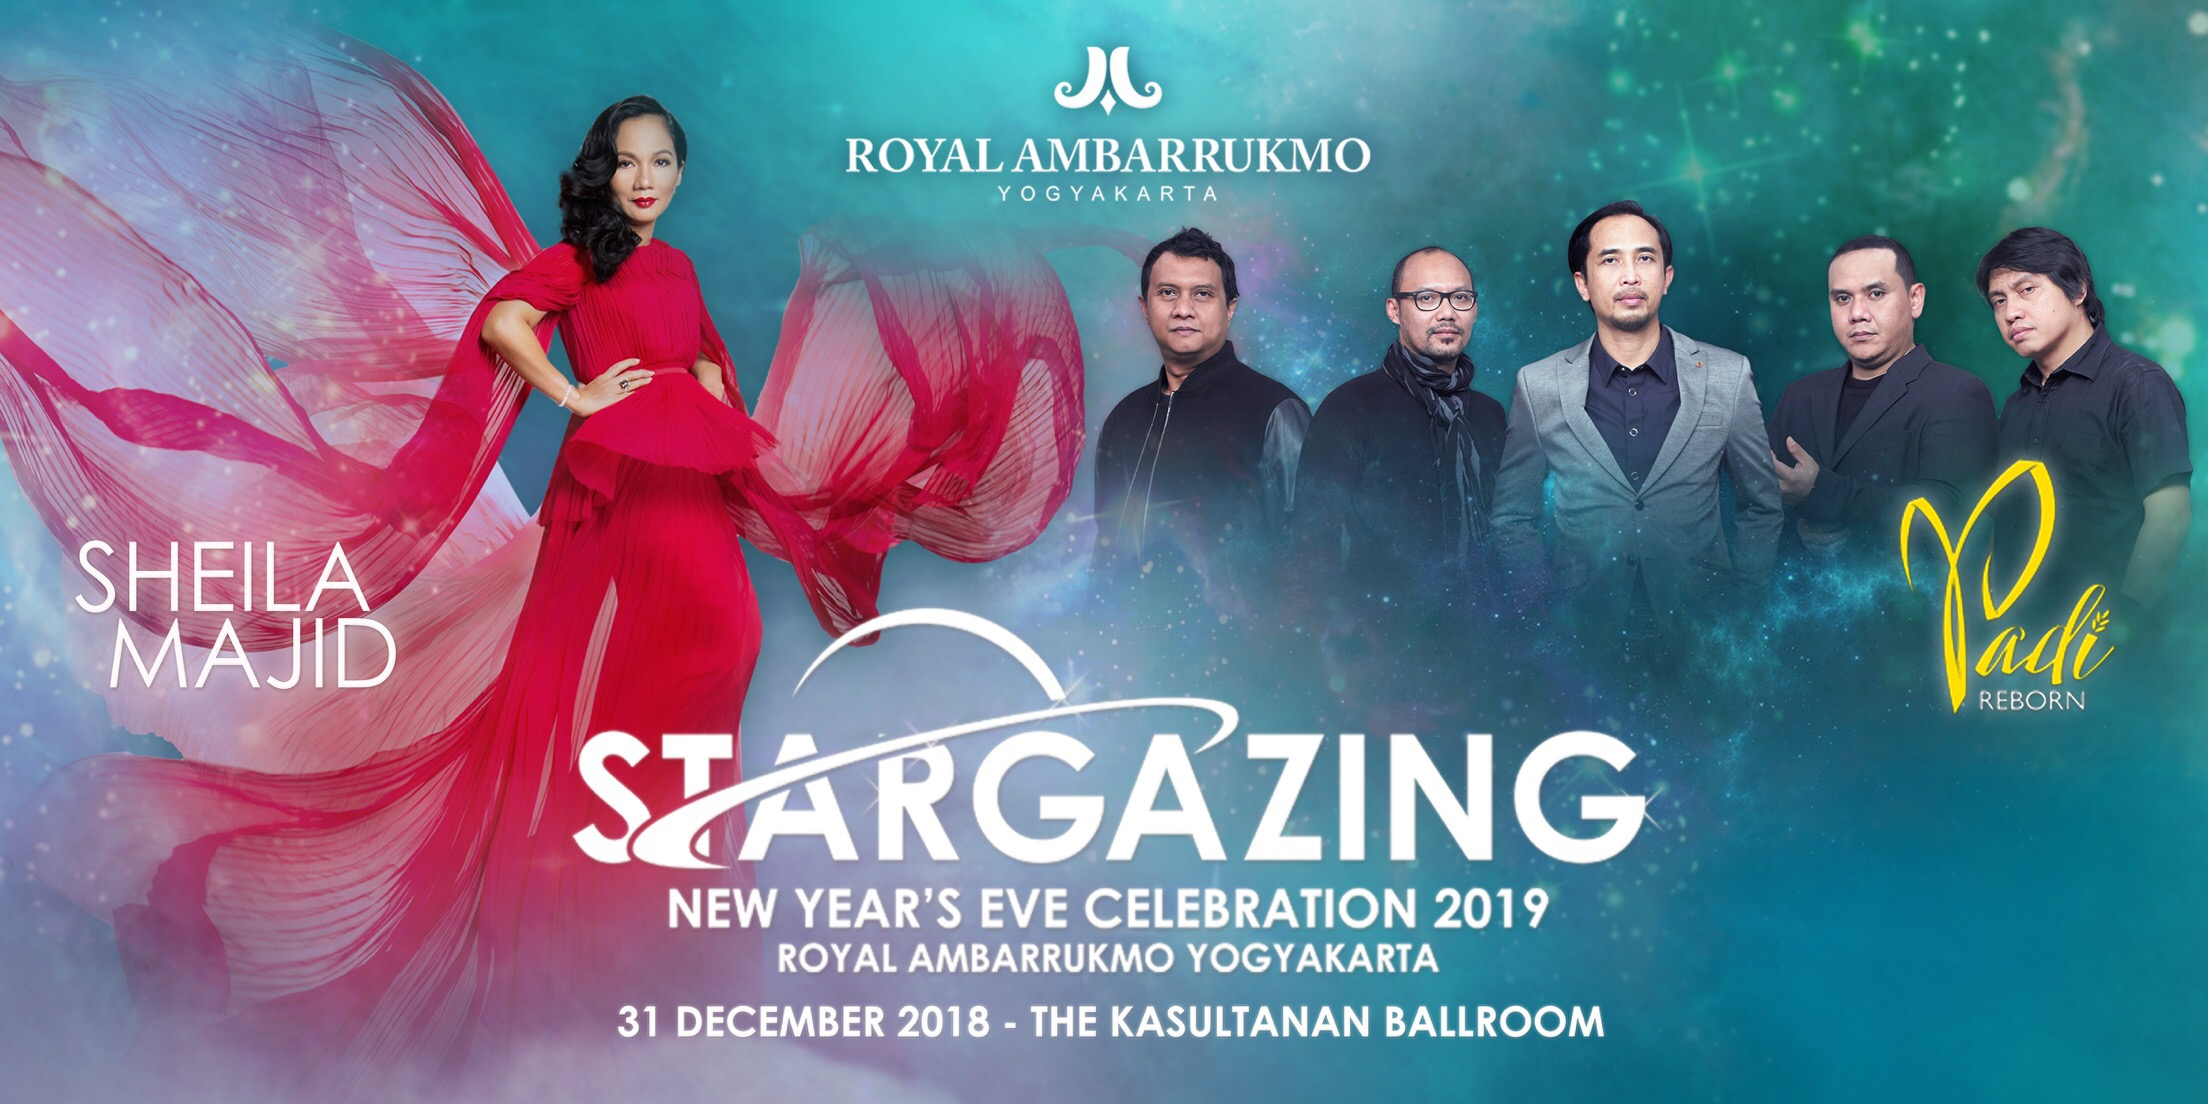 Stargazing New Year's Eve Celebration 2019 Royal Ambarrukmo